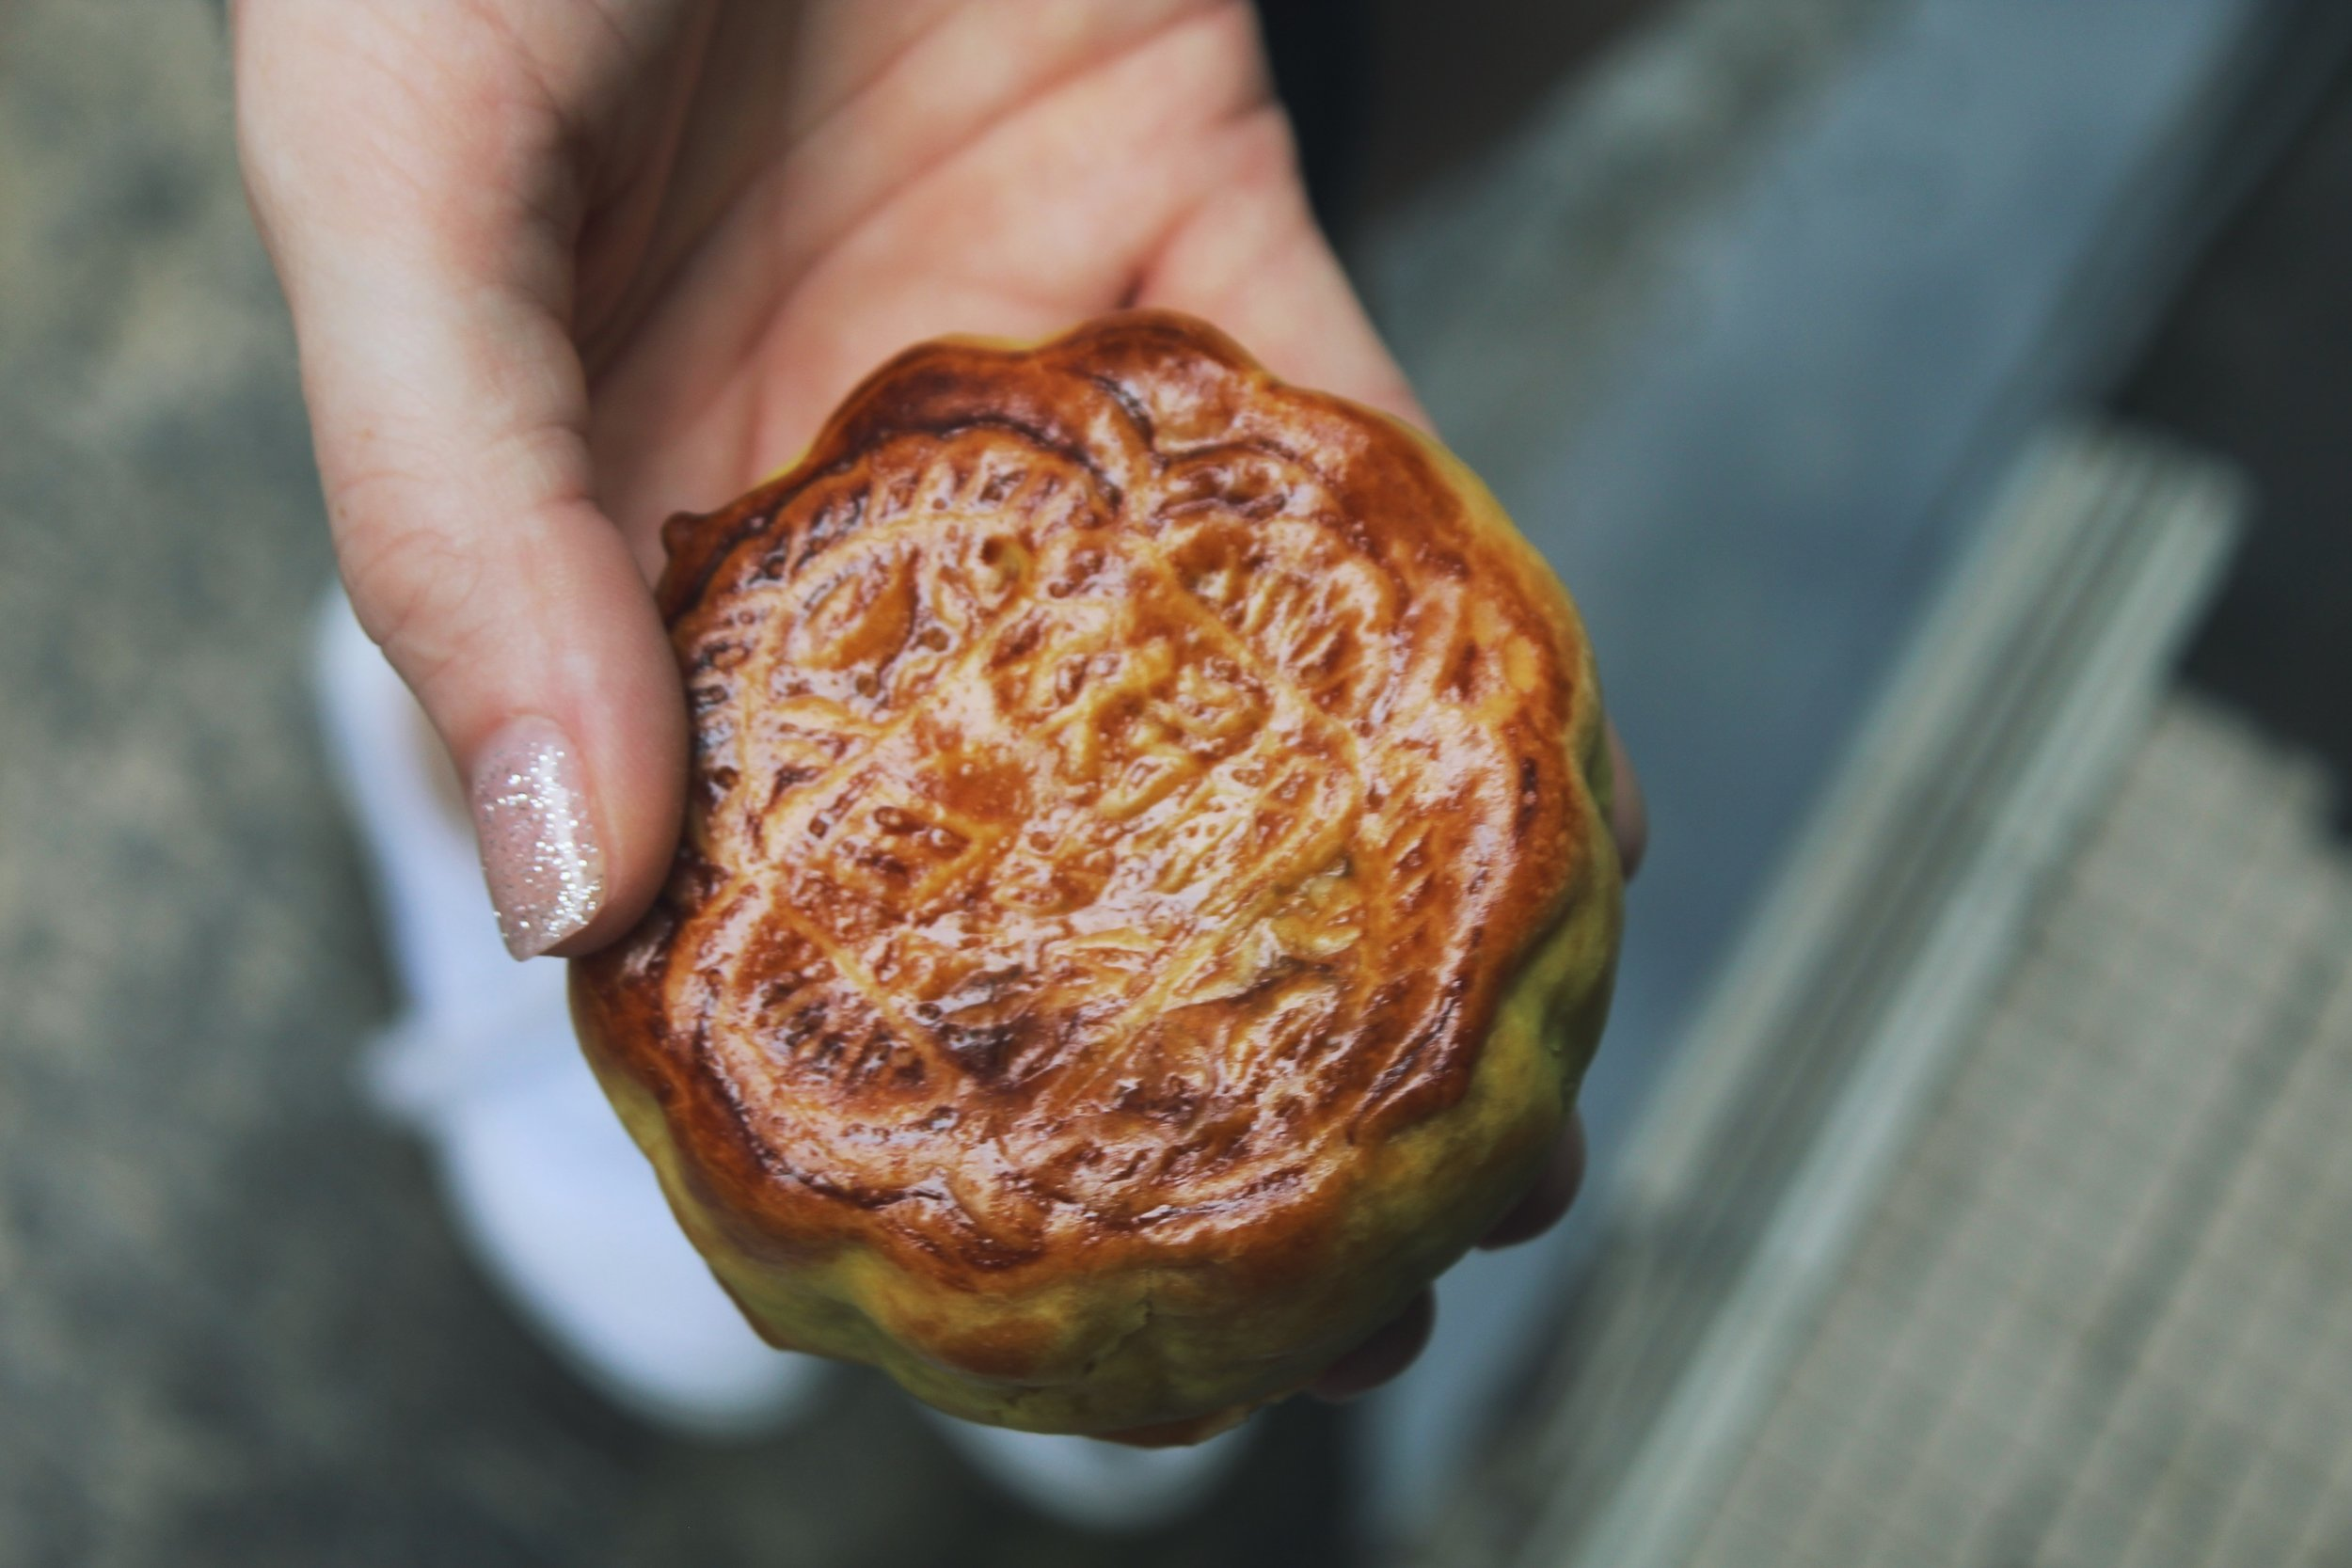 One of the famous Mid-Autumn Fest mooncakes. We got this one in Tai O.